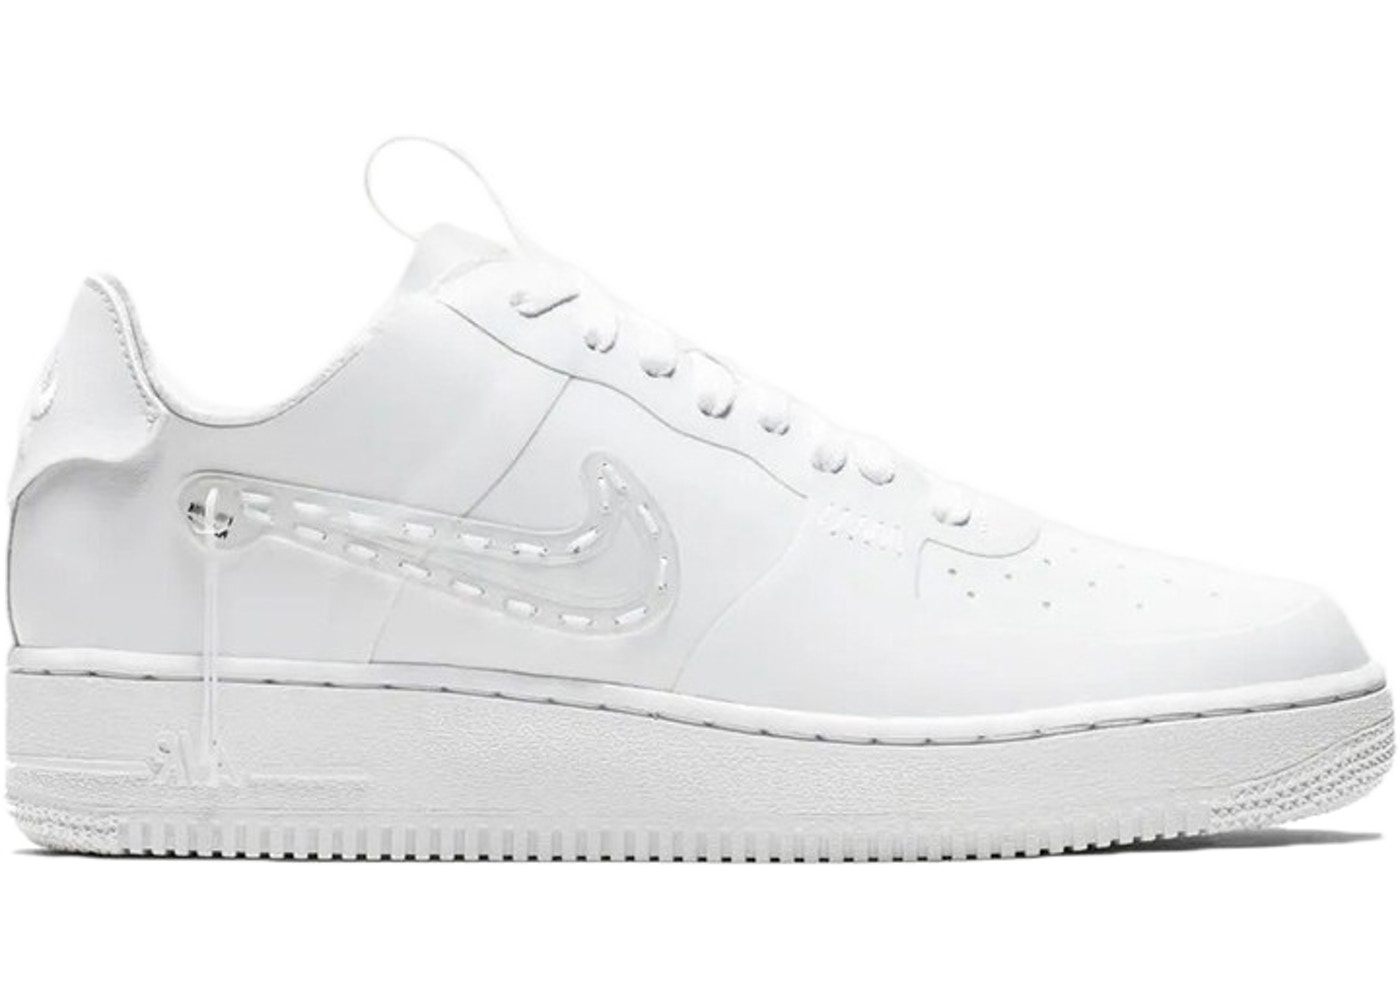 promo code 9c196 0c9a9 Buy Nike Air Force Shoes   Deadstock Sneakers